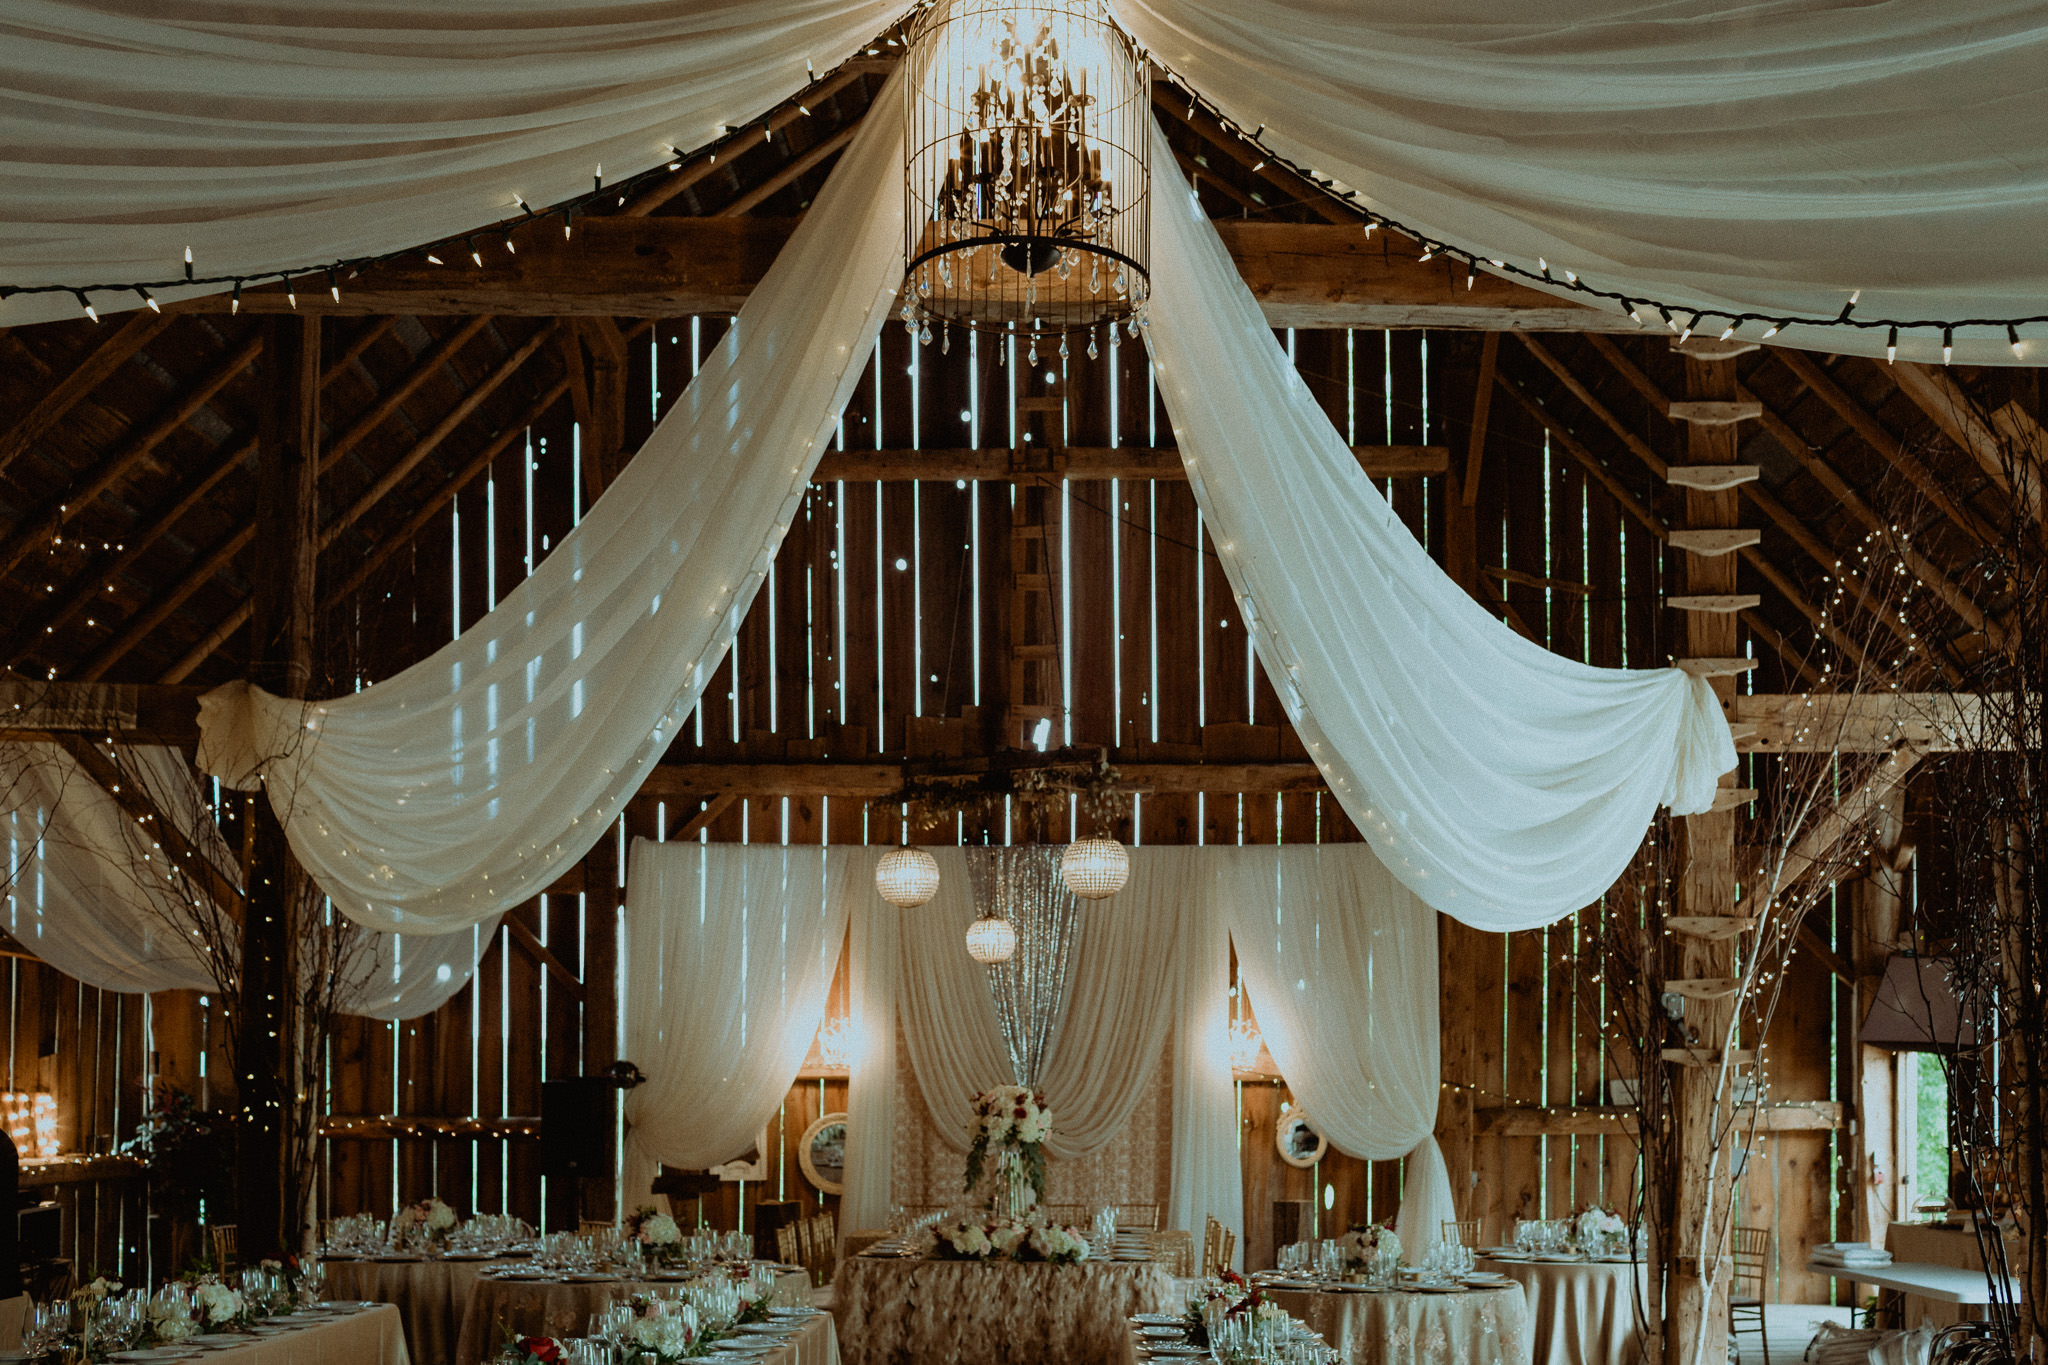 Century Barn indoor reception space detail and decor photos